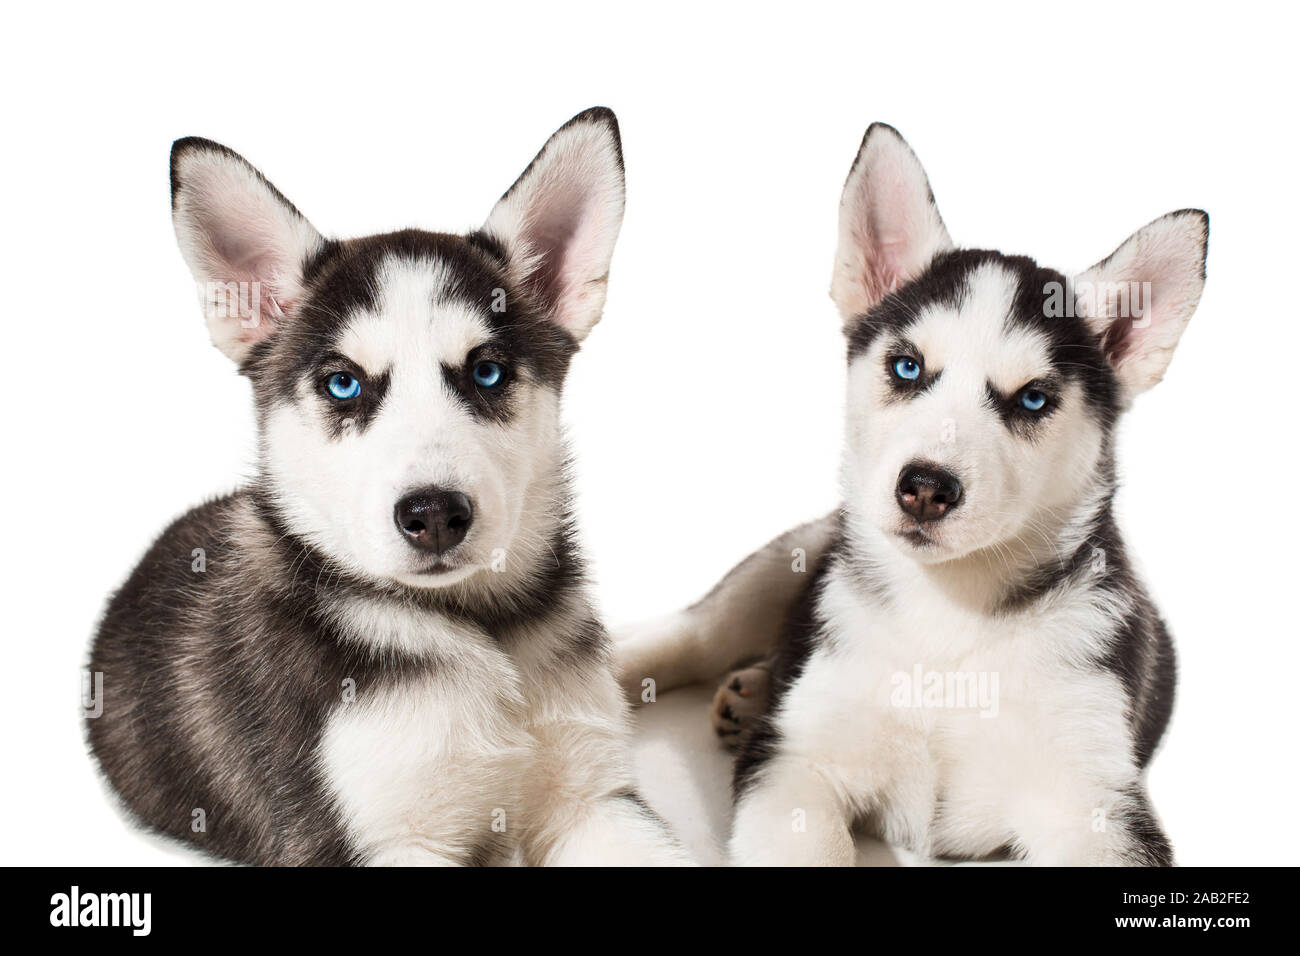 Two Little Cute Puppy Of Siberian Husky Dog With Blue Eyes Isolated Stock Photo Alamy